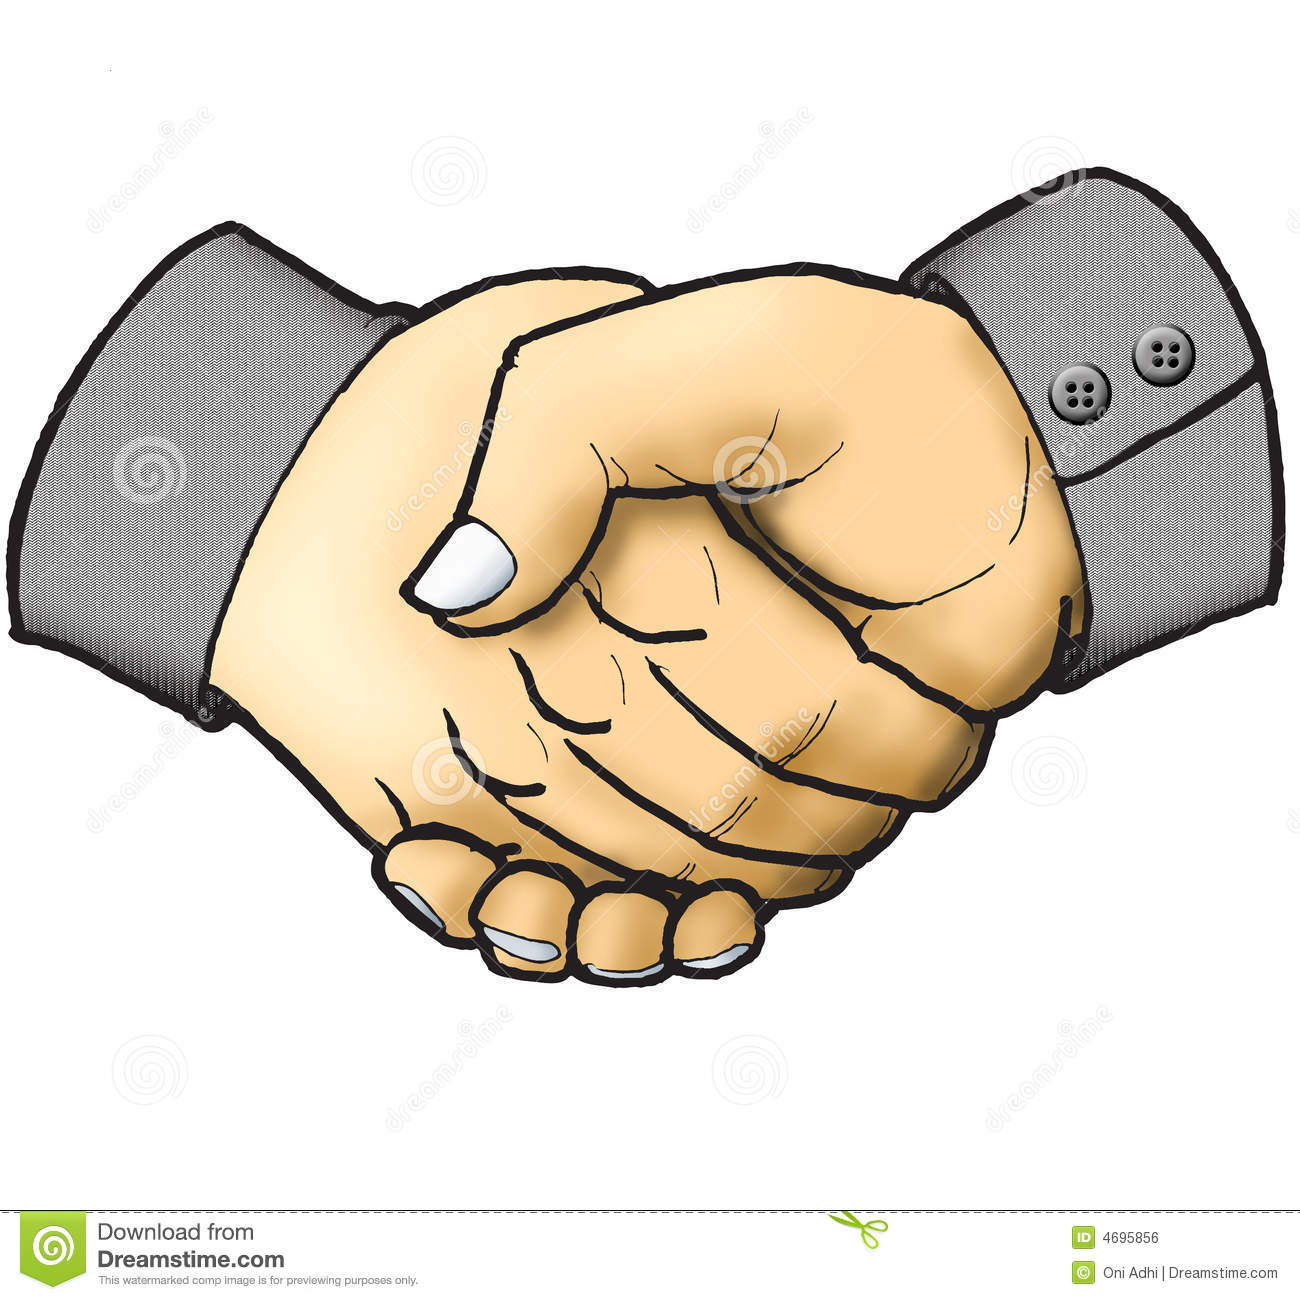 Two People Shaking Hands Clipart - Clipart Kid